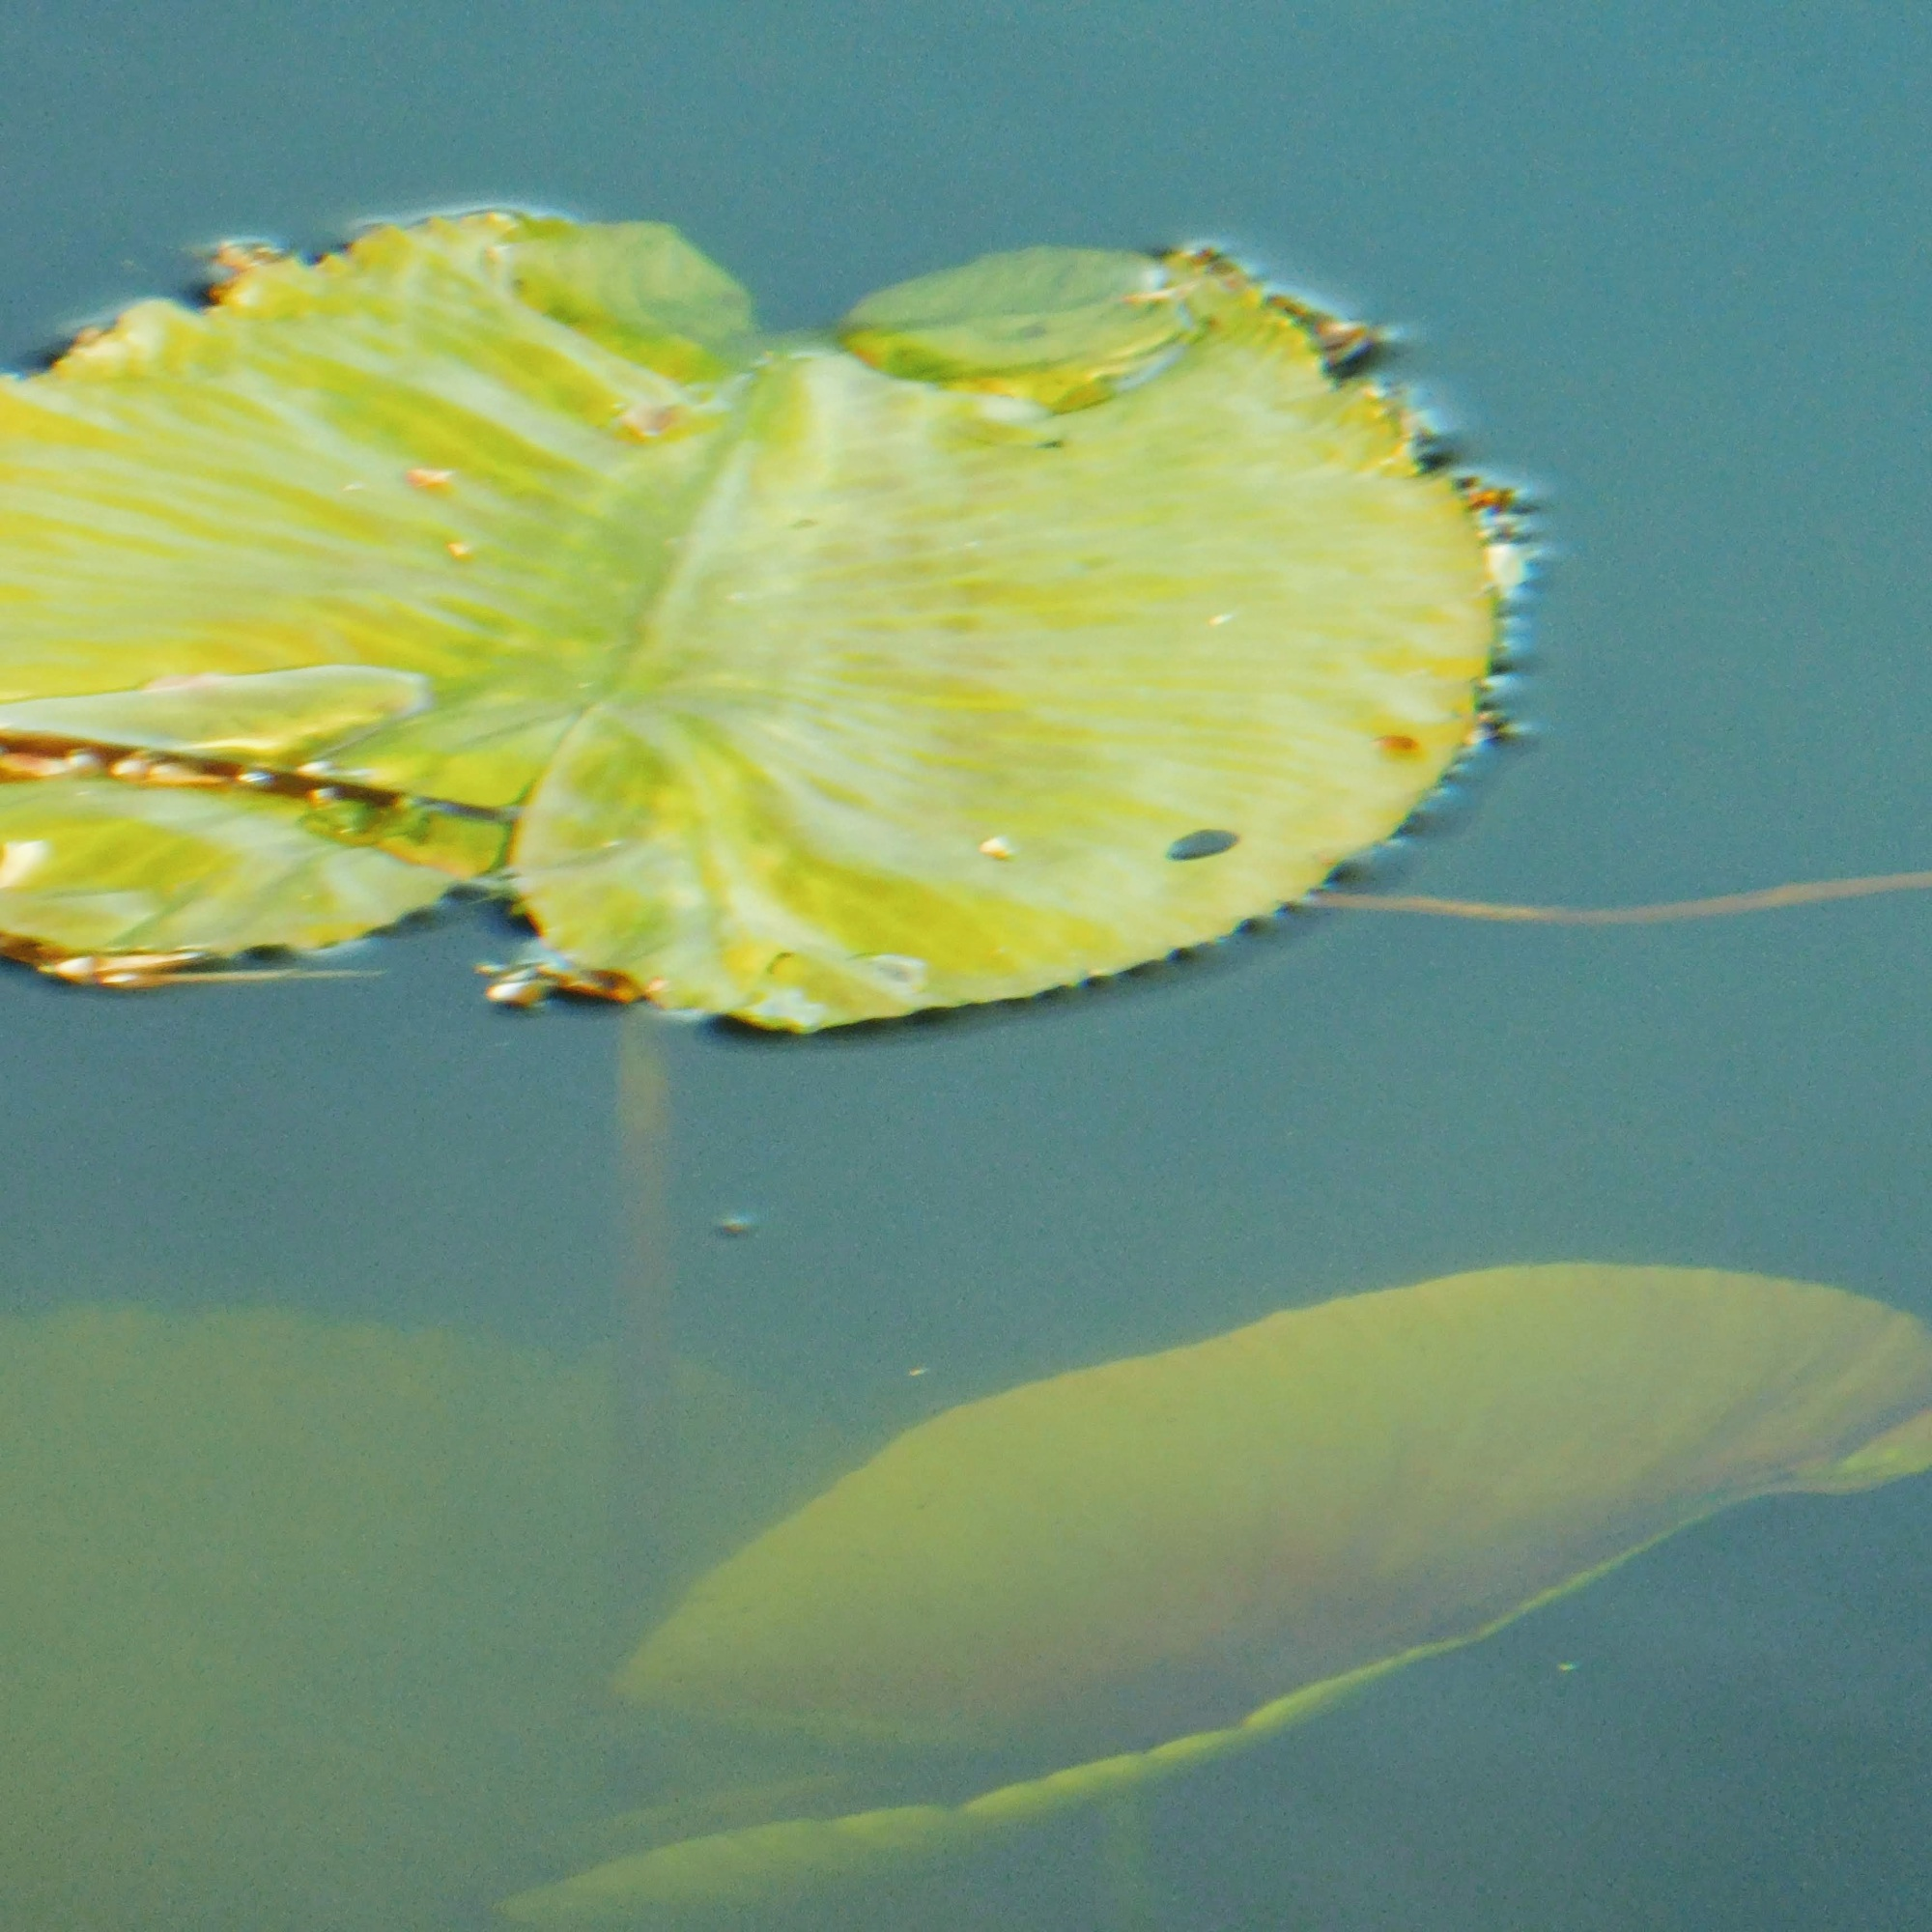 water lily leaves emerging from murky water